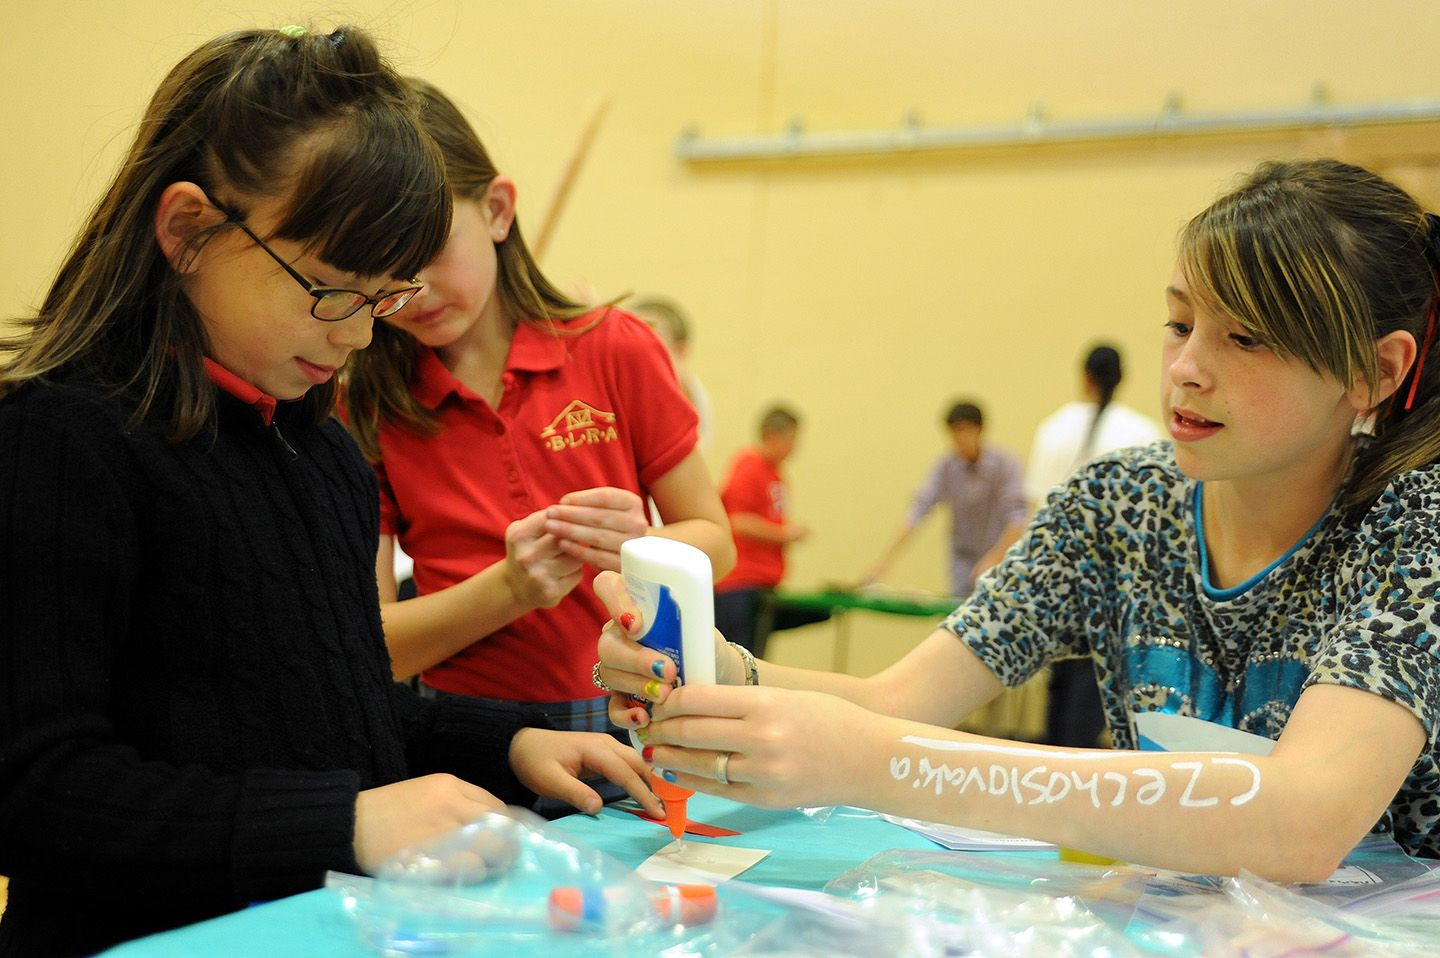 """Second grader Kiara Barney, 8, and fifth grader Hailey Sapanaro, 11, create a Czech Republic flag May 10 at Banning Lewis Ranch Academy in Falcon School District 49. While kindergarten-fourth grade students entered the academy's gymnasium, groups of fifth graders welcomed them to """"European extravaganza."""" They encouraged them to visit their country-themed tables, where they'd present research and stamp """"passports."""" The event started with classroom presentations of slideshows and magazine…"""